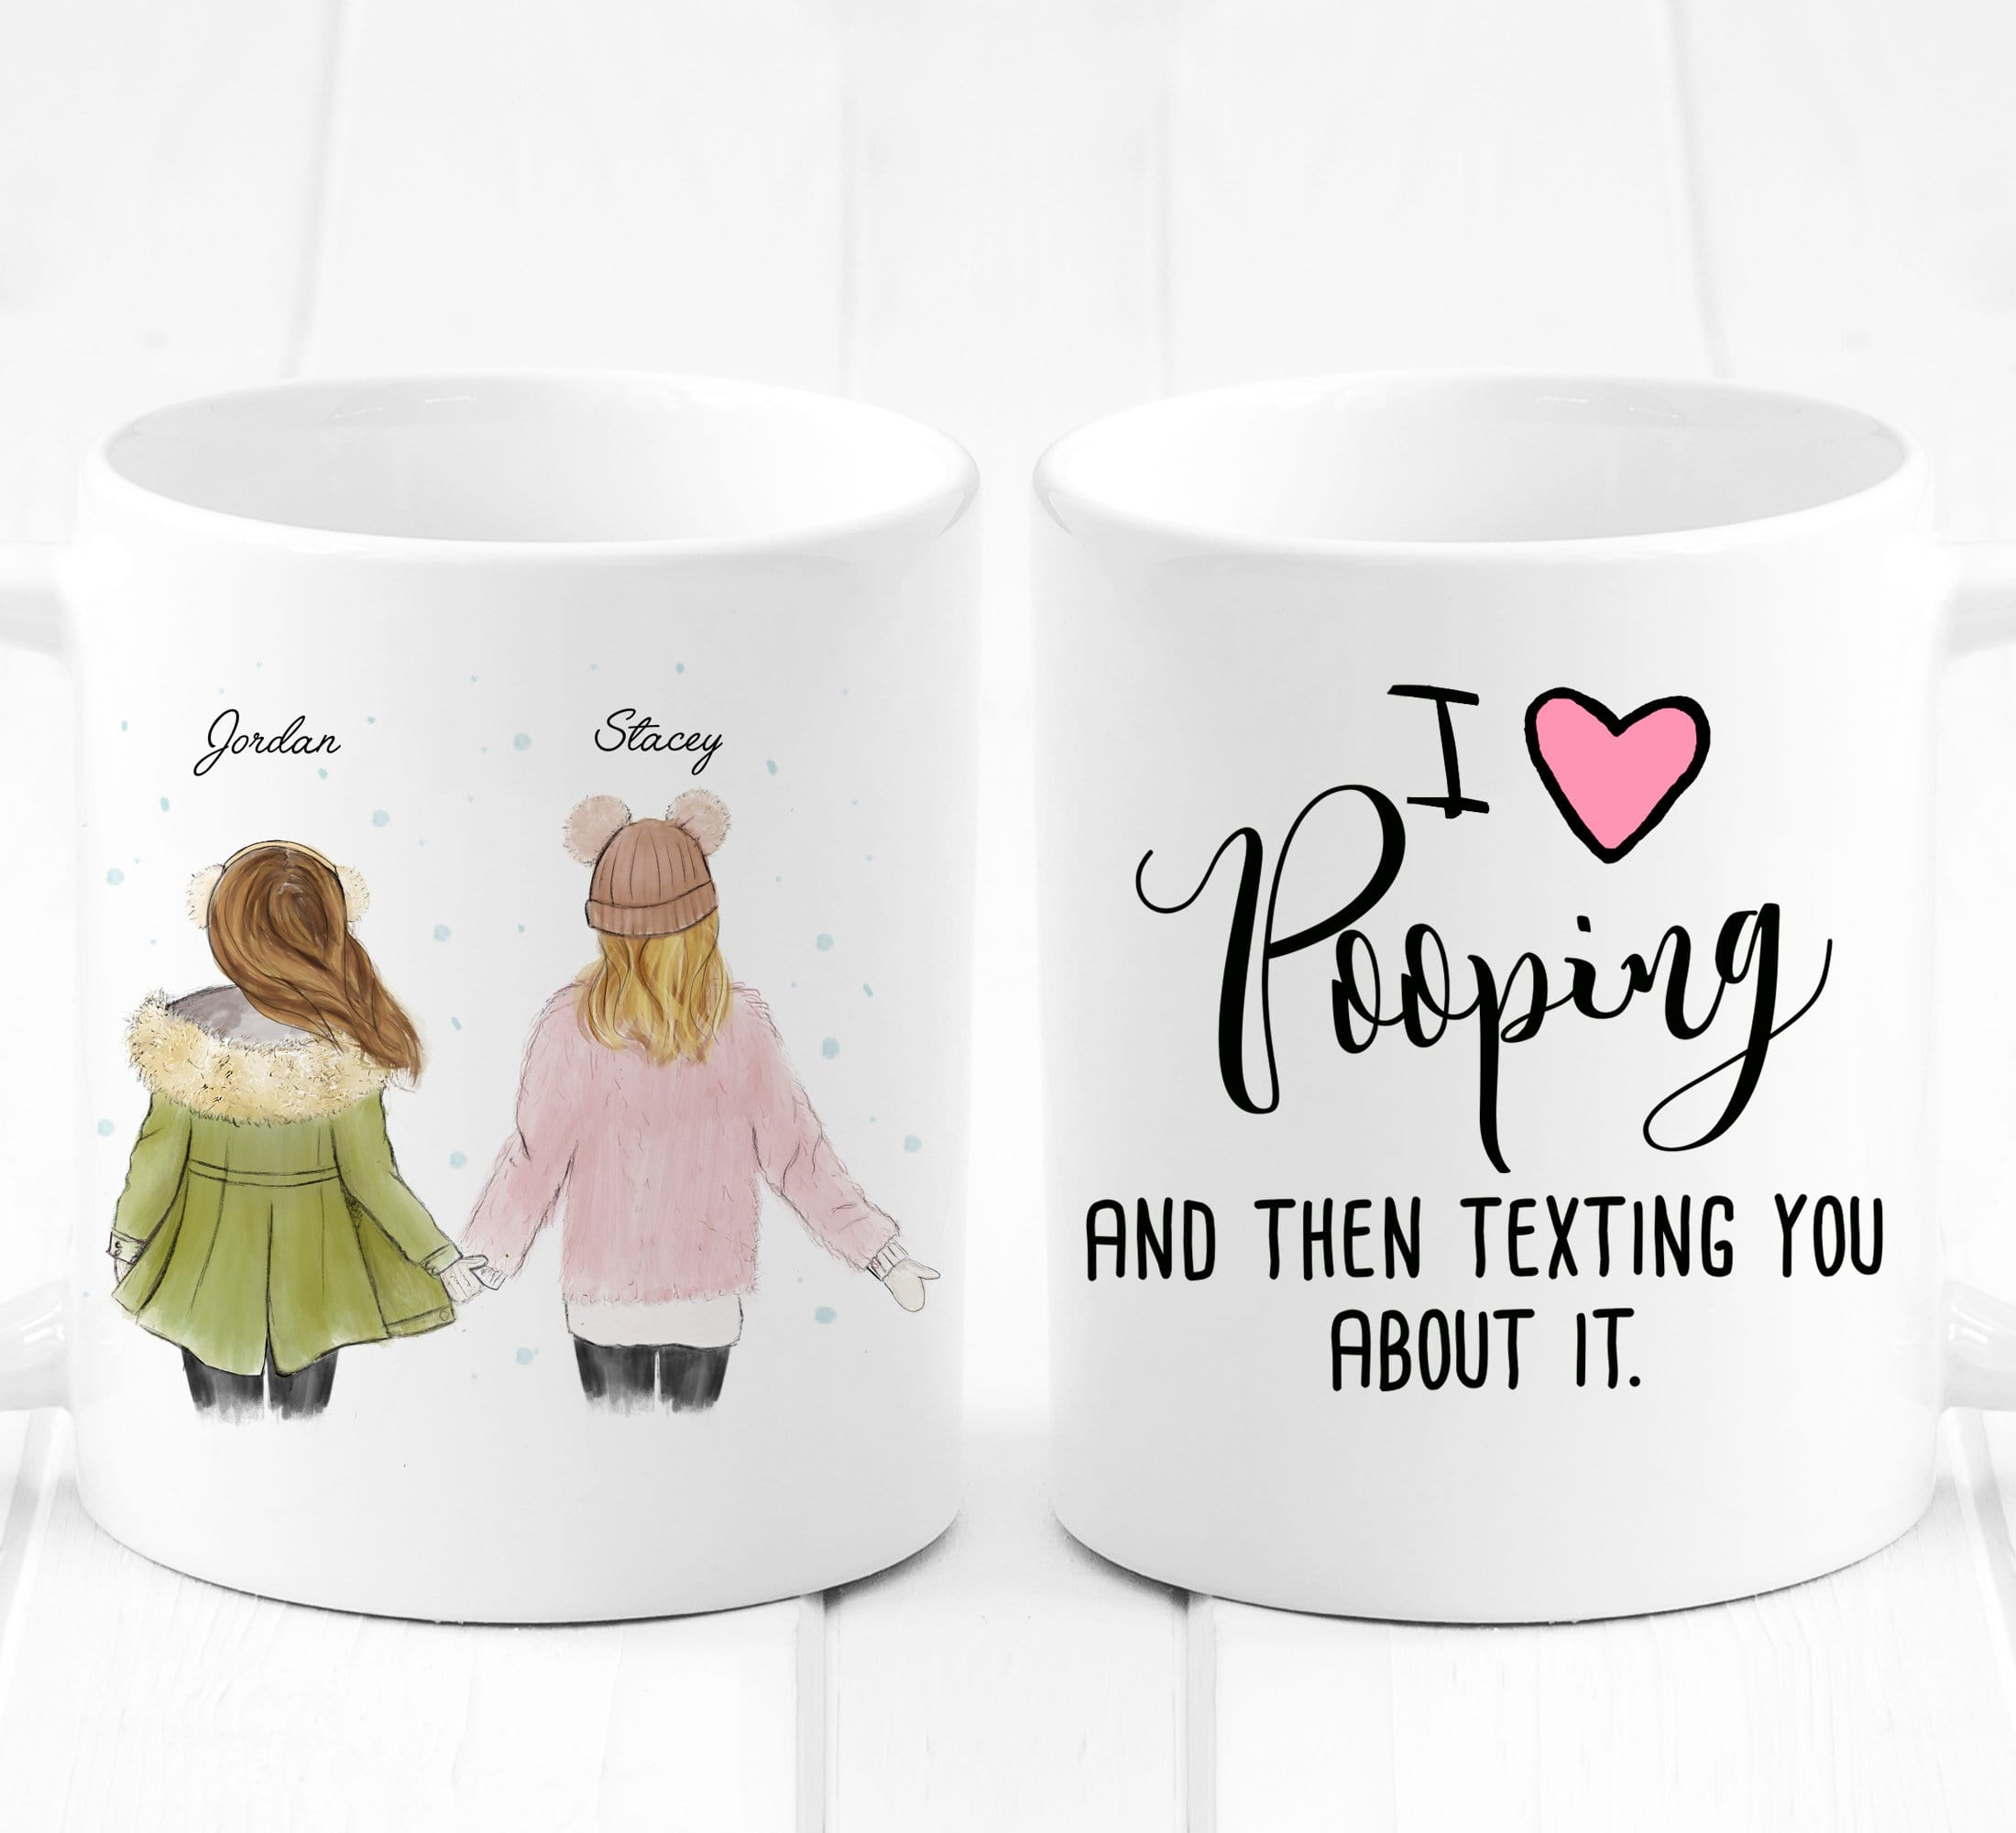 Gift for girlfriend custom gifts for friends find gift ideas for gift for girlfriend personalized gift for friend mug negle Choice Image